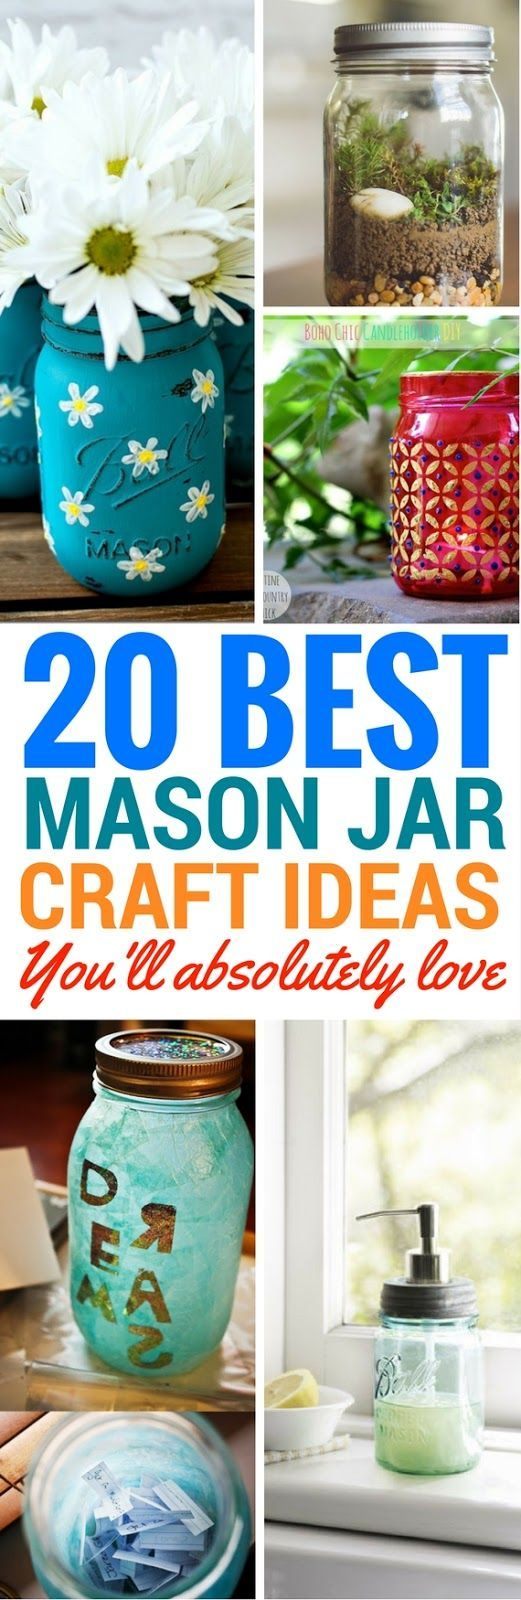 20 Amazing DIY Mason Jar Projects for